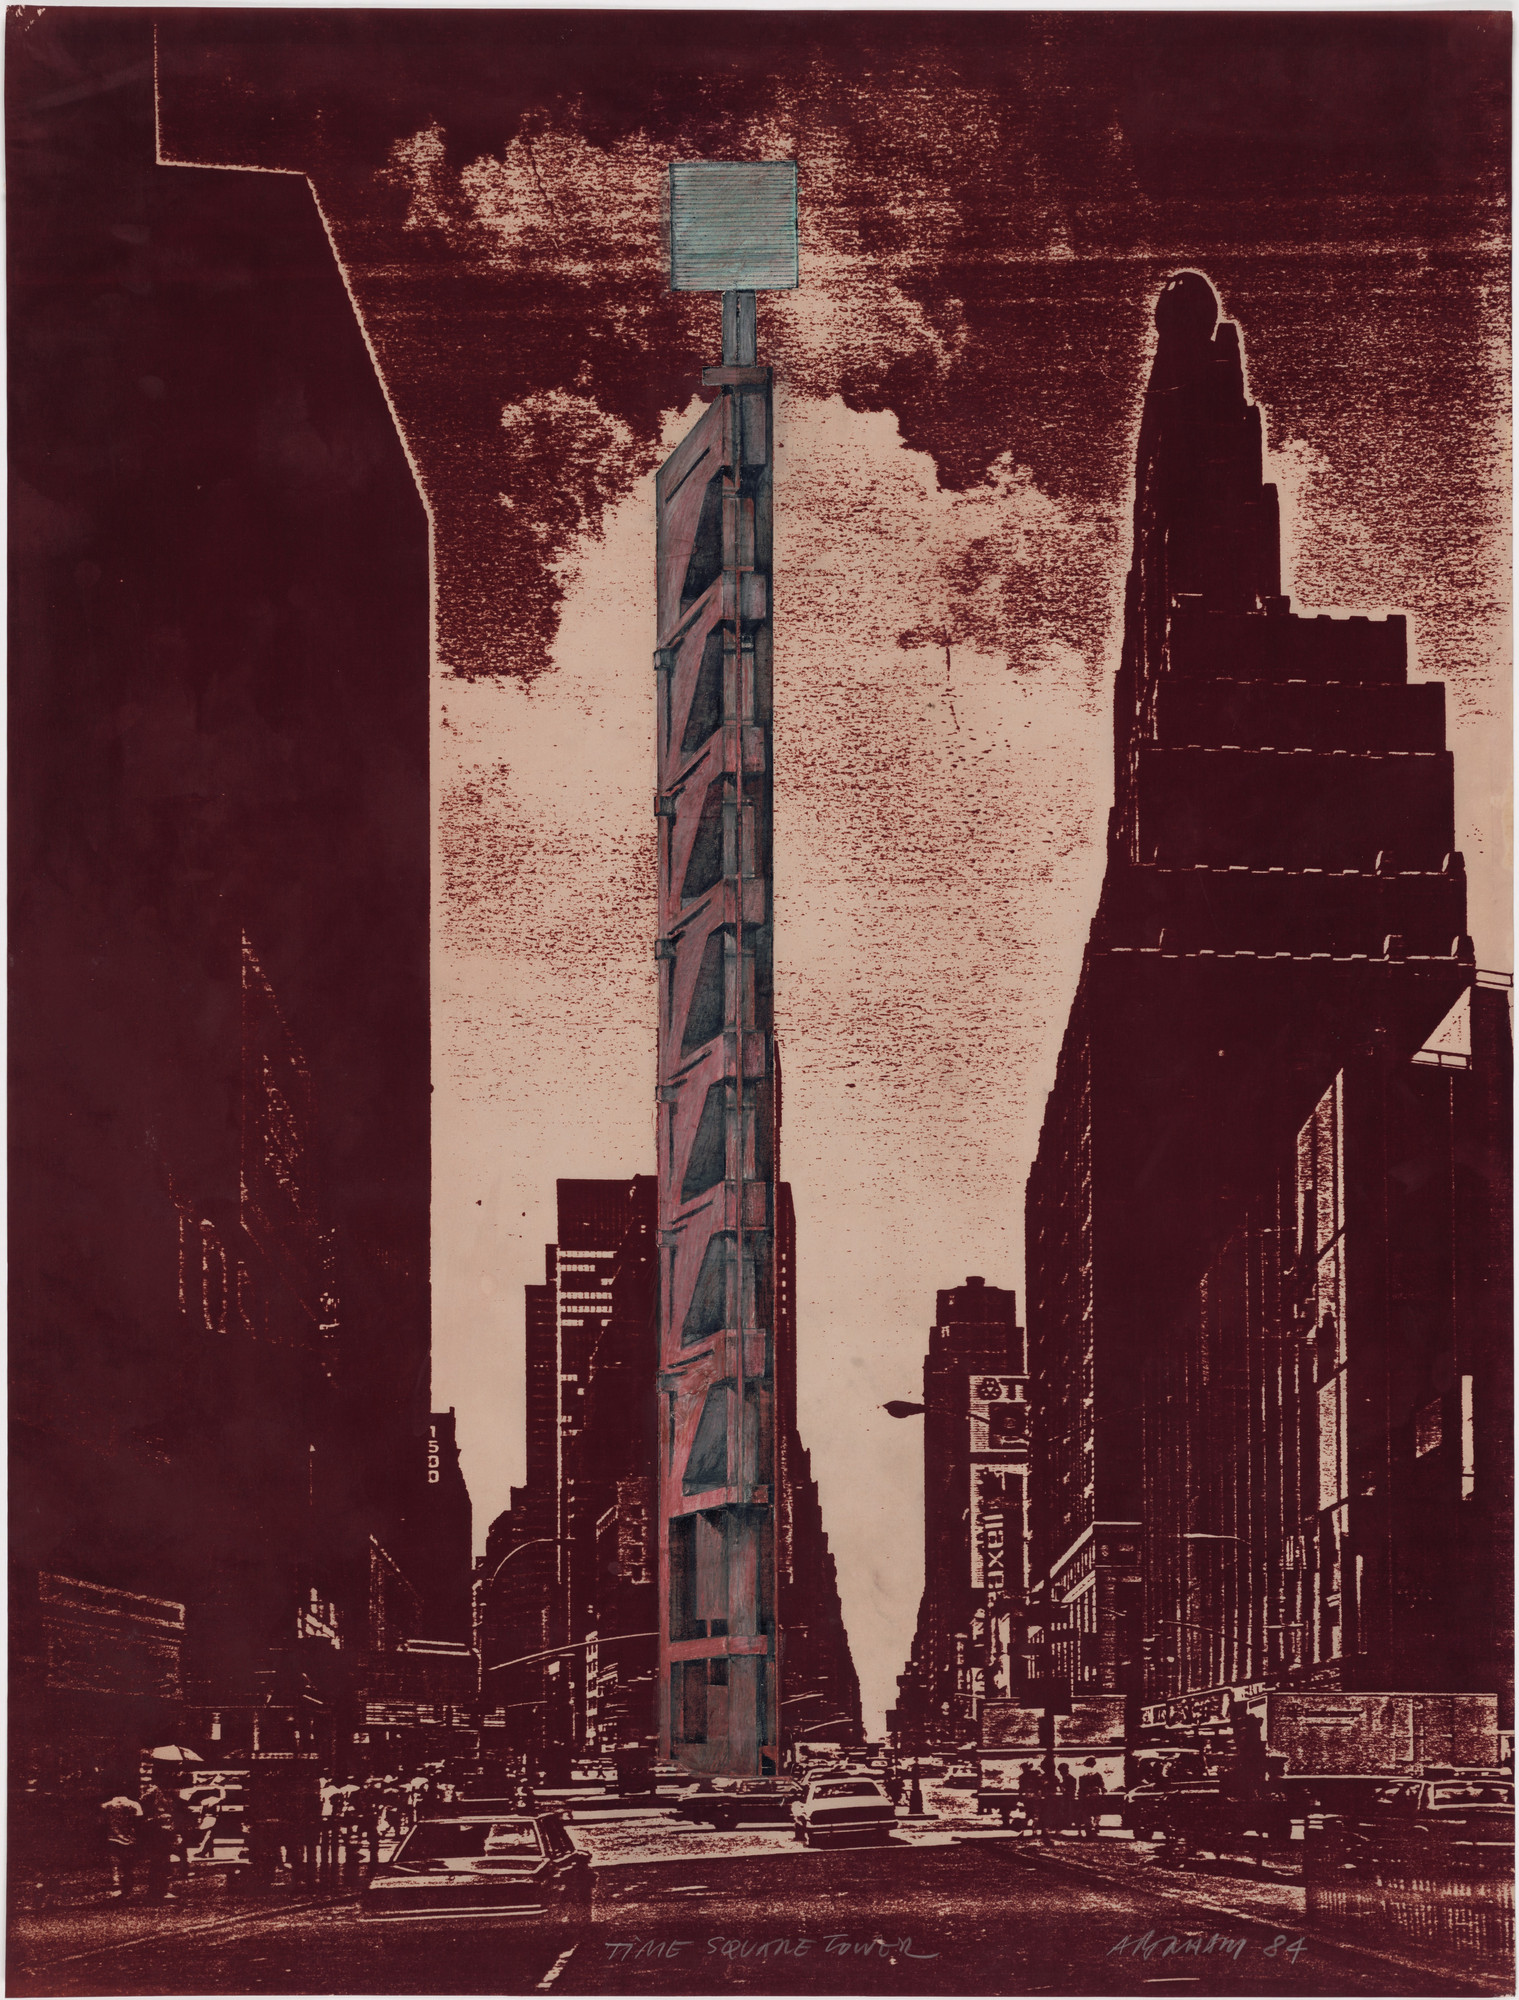 Raimund Abraham. Times Square Tower Project, New York, NY (Exterior perspective). 1984